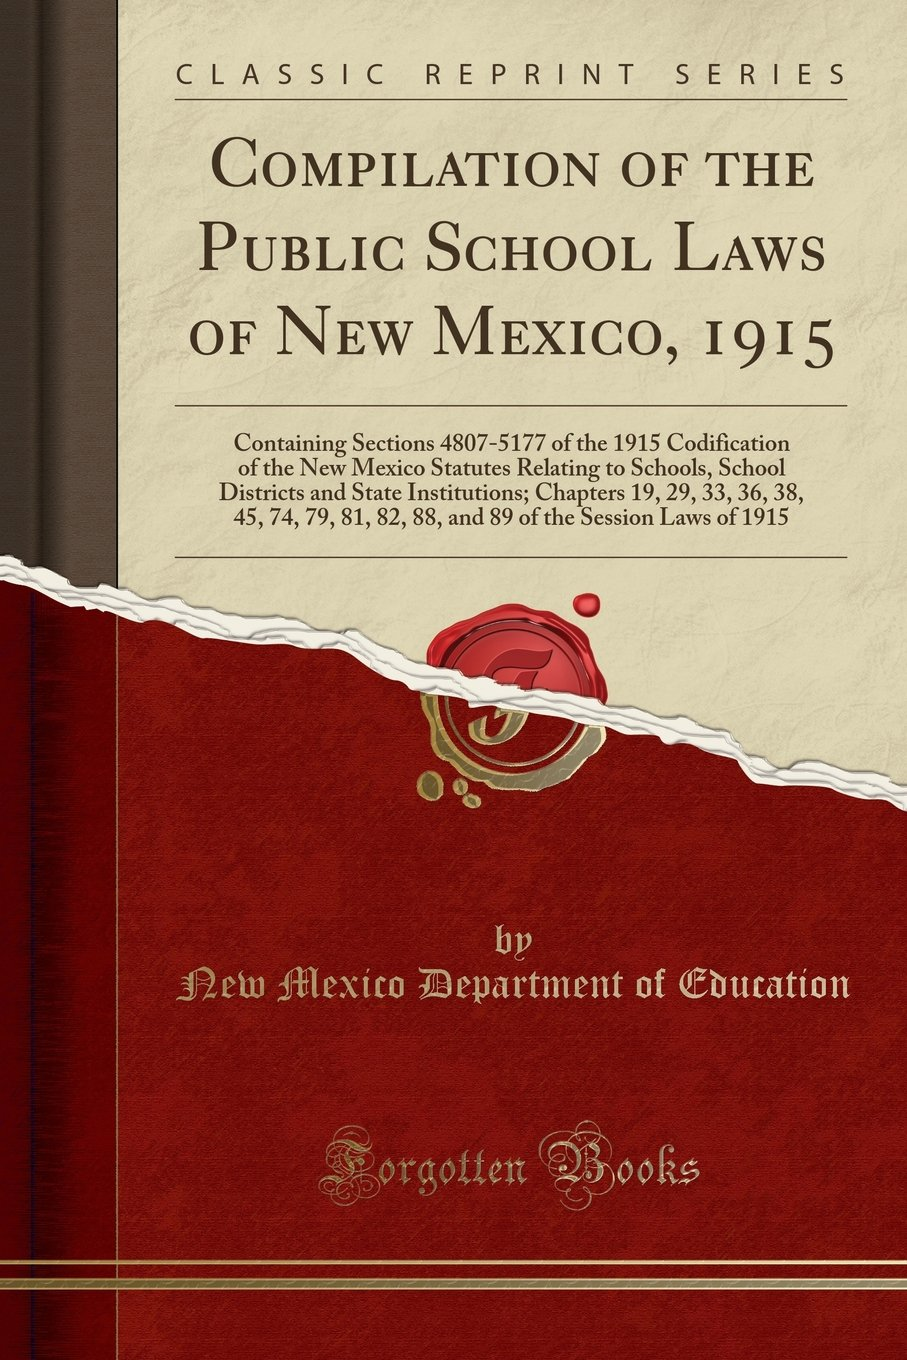 Download Compilation of the Public School Laws of New Mexico, 1915: Containing Sections 4807-5177 of the 1915 Codification of the New Mexico Statutes Relating ... 19, 29, 33, 36, 38, 45, 74, 79, 81, 82, 88, PDF